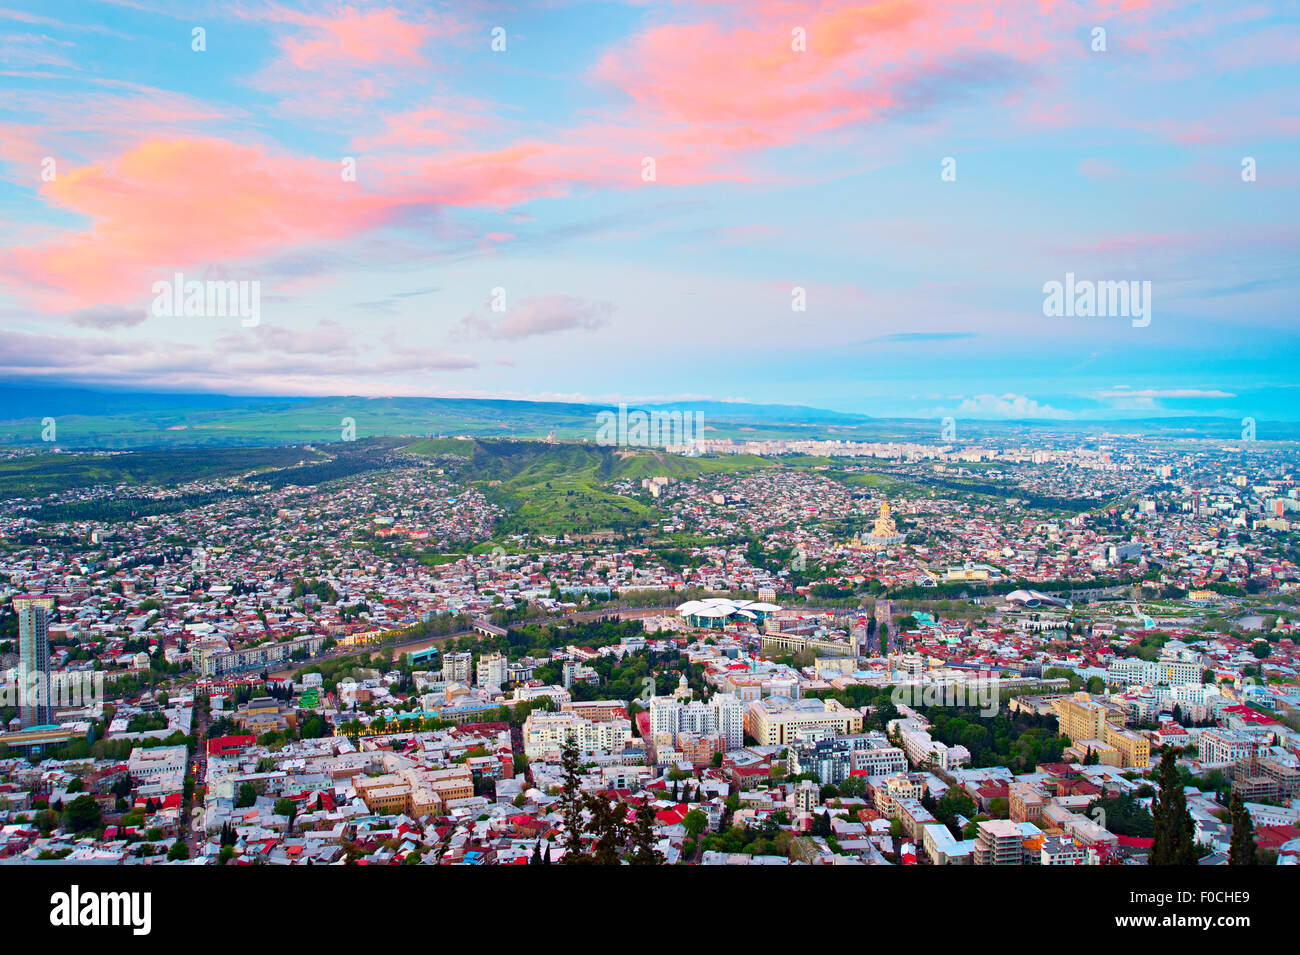 Skyline of Tbilisi at sunset. Top view. Georgia - Stock Image